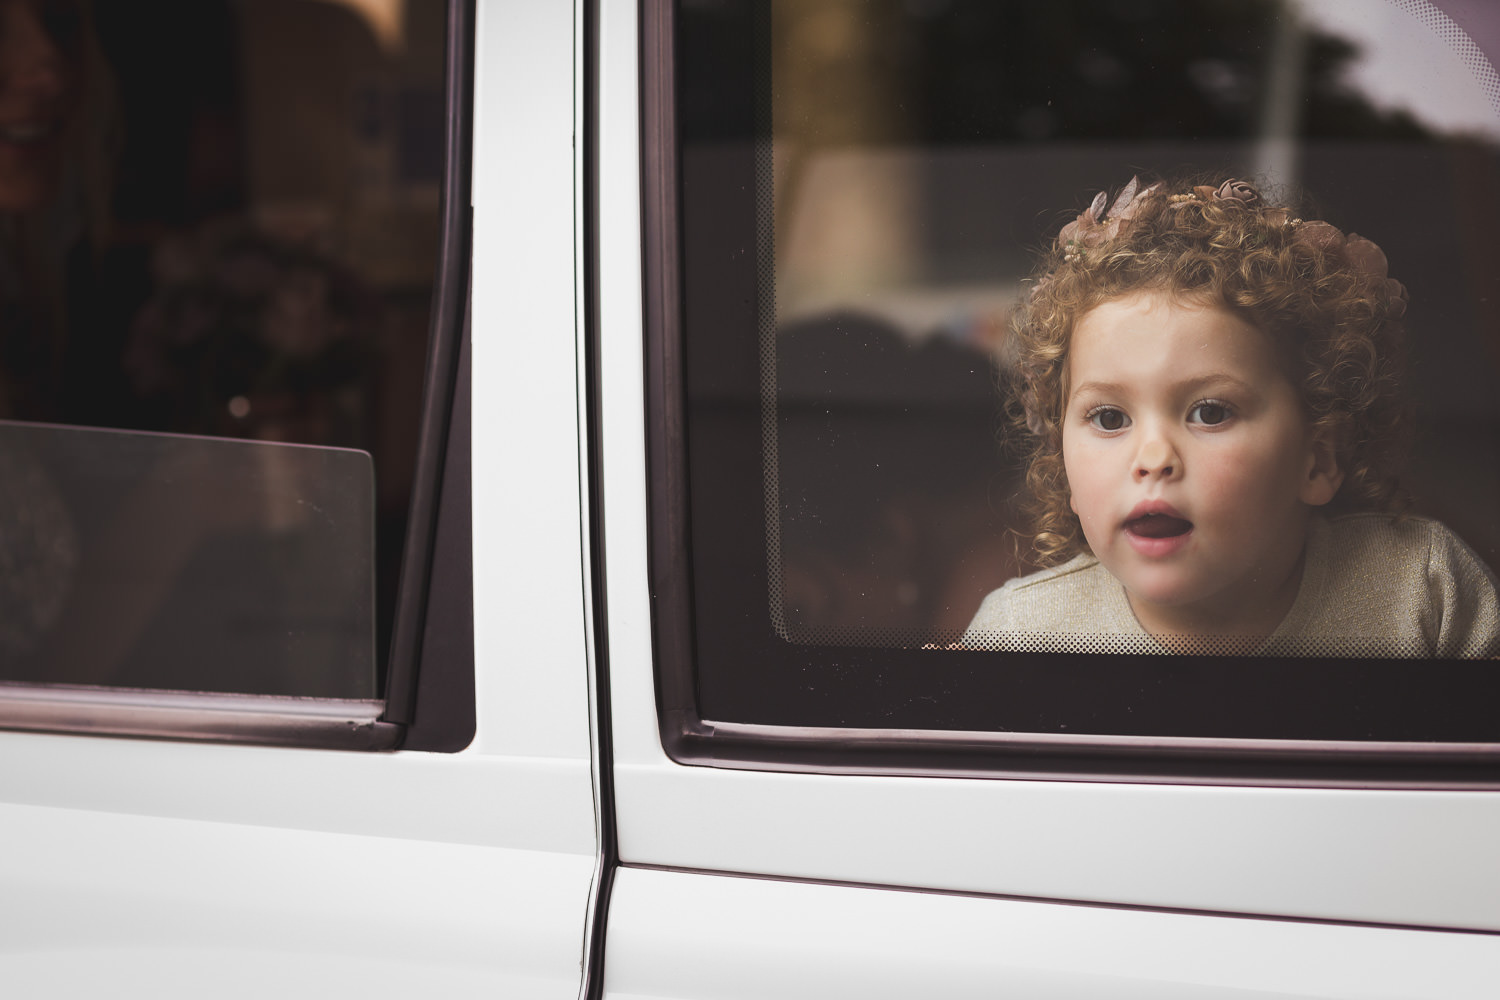 flower girl in London taxi westminster abbey by photographer simon carr